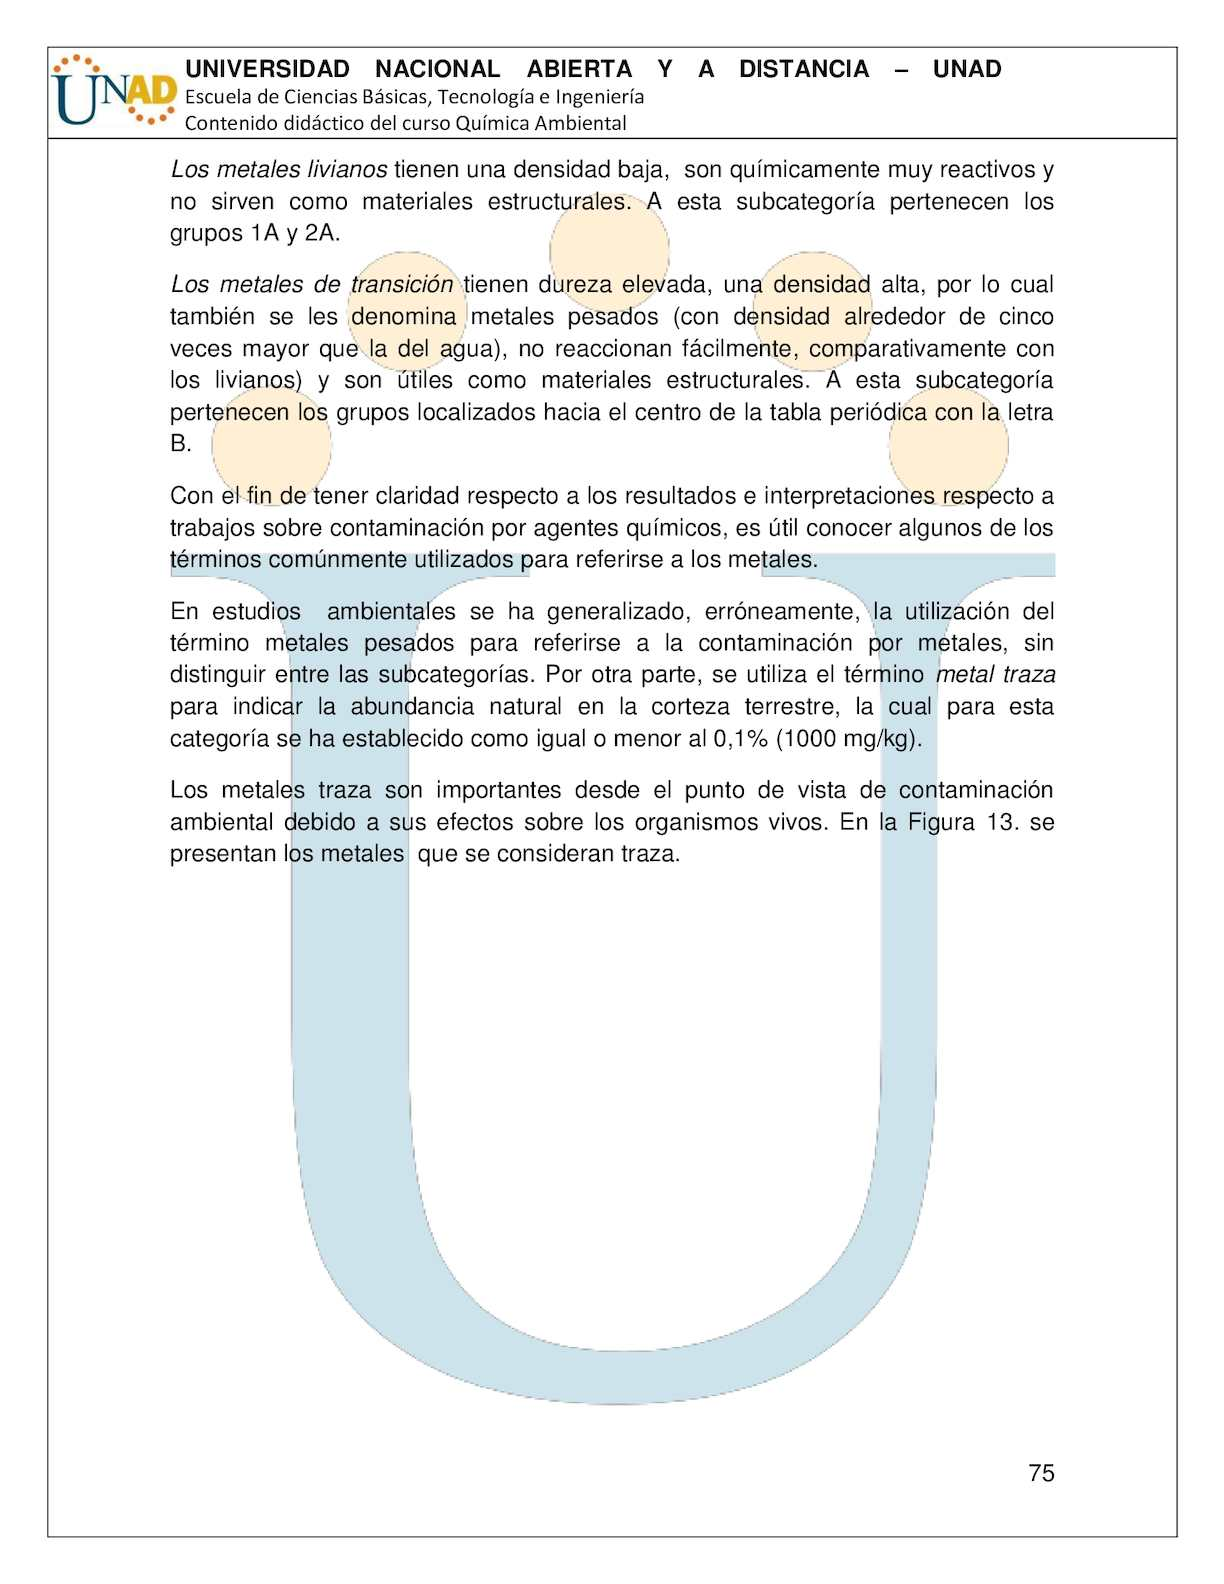 401549 quimica ambiental modulo v2 calameo downloader page 75 urtaz Image collections